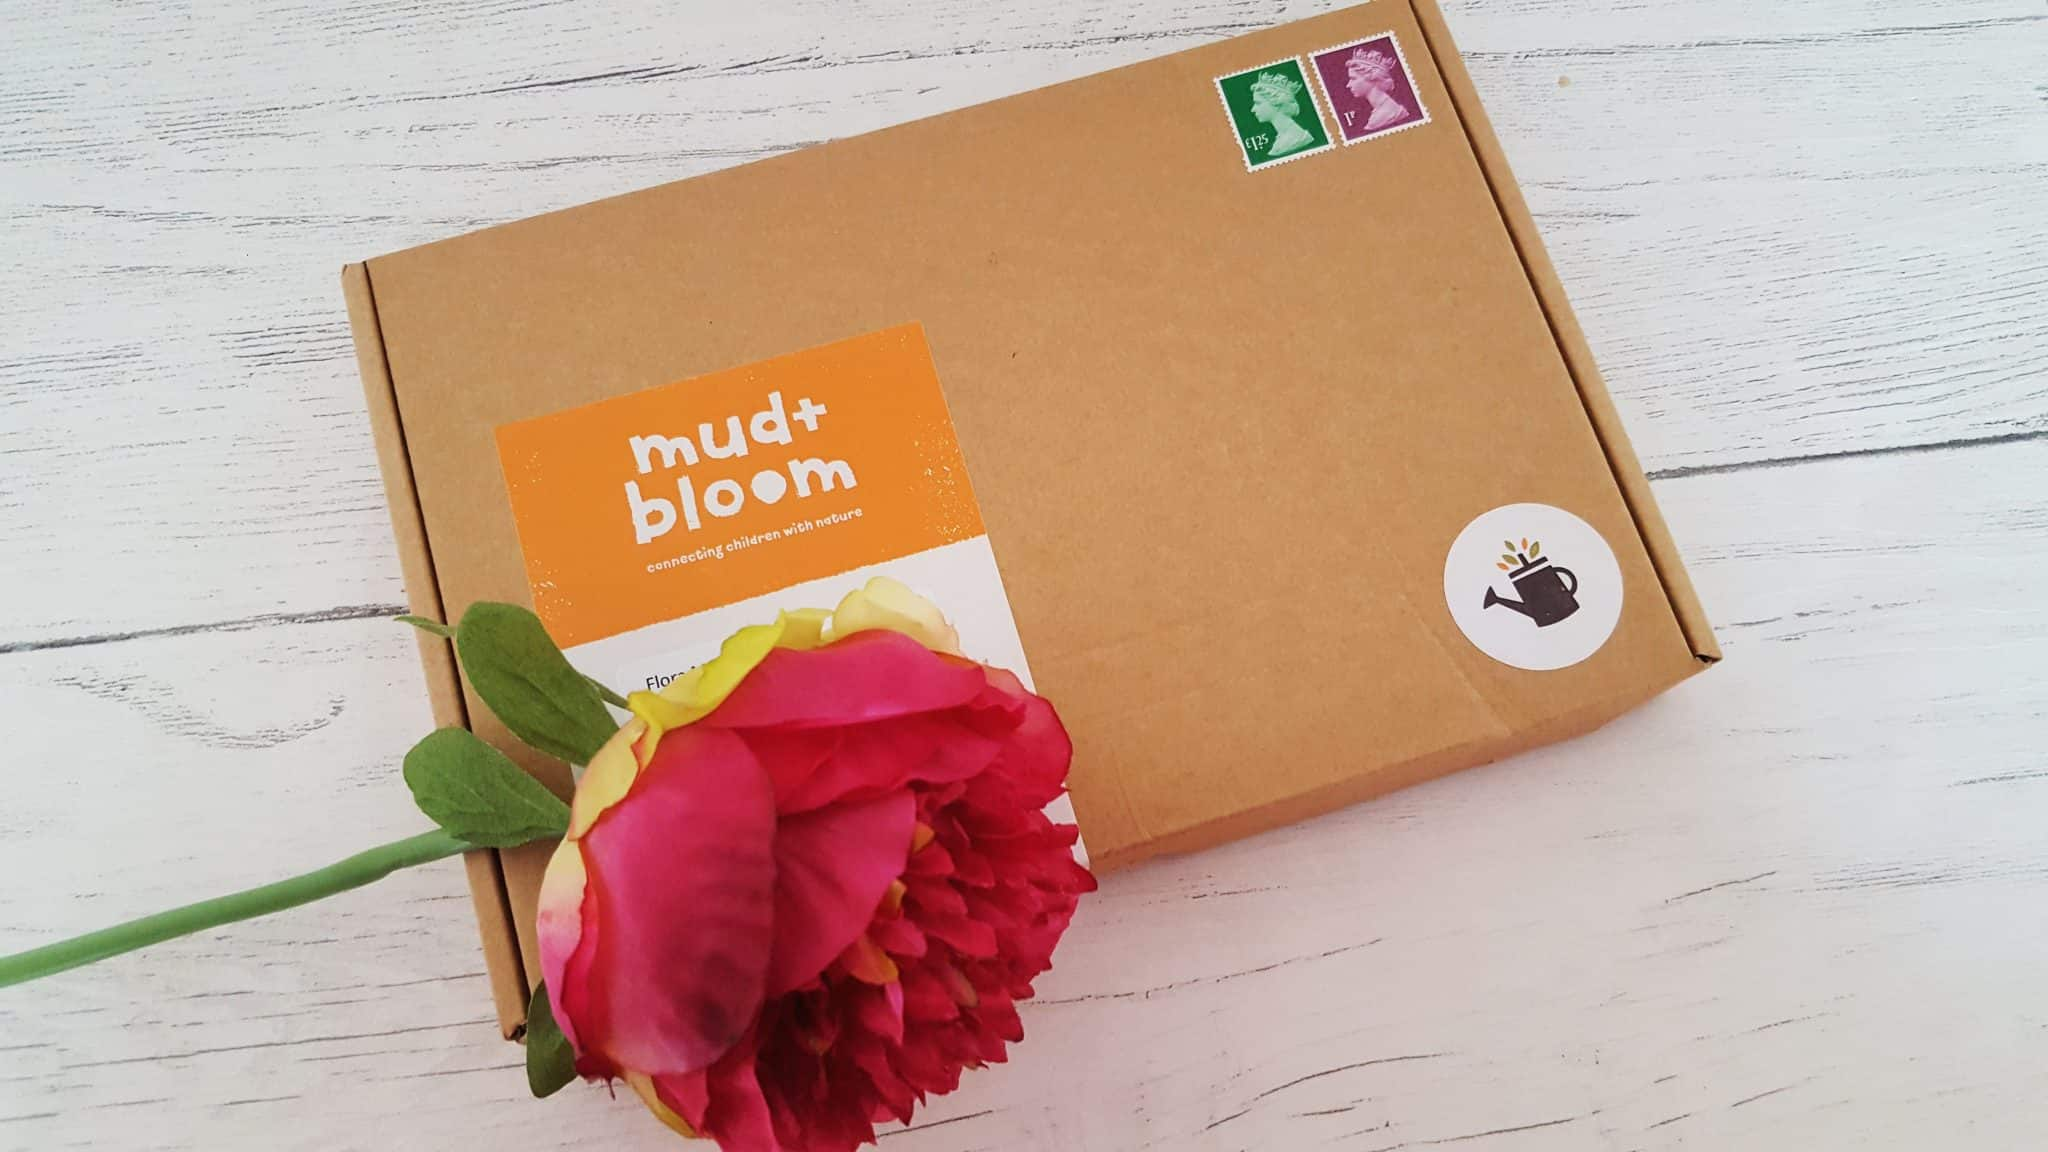 mud-and-bloom-may-review_www.lisasnotebook.com